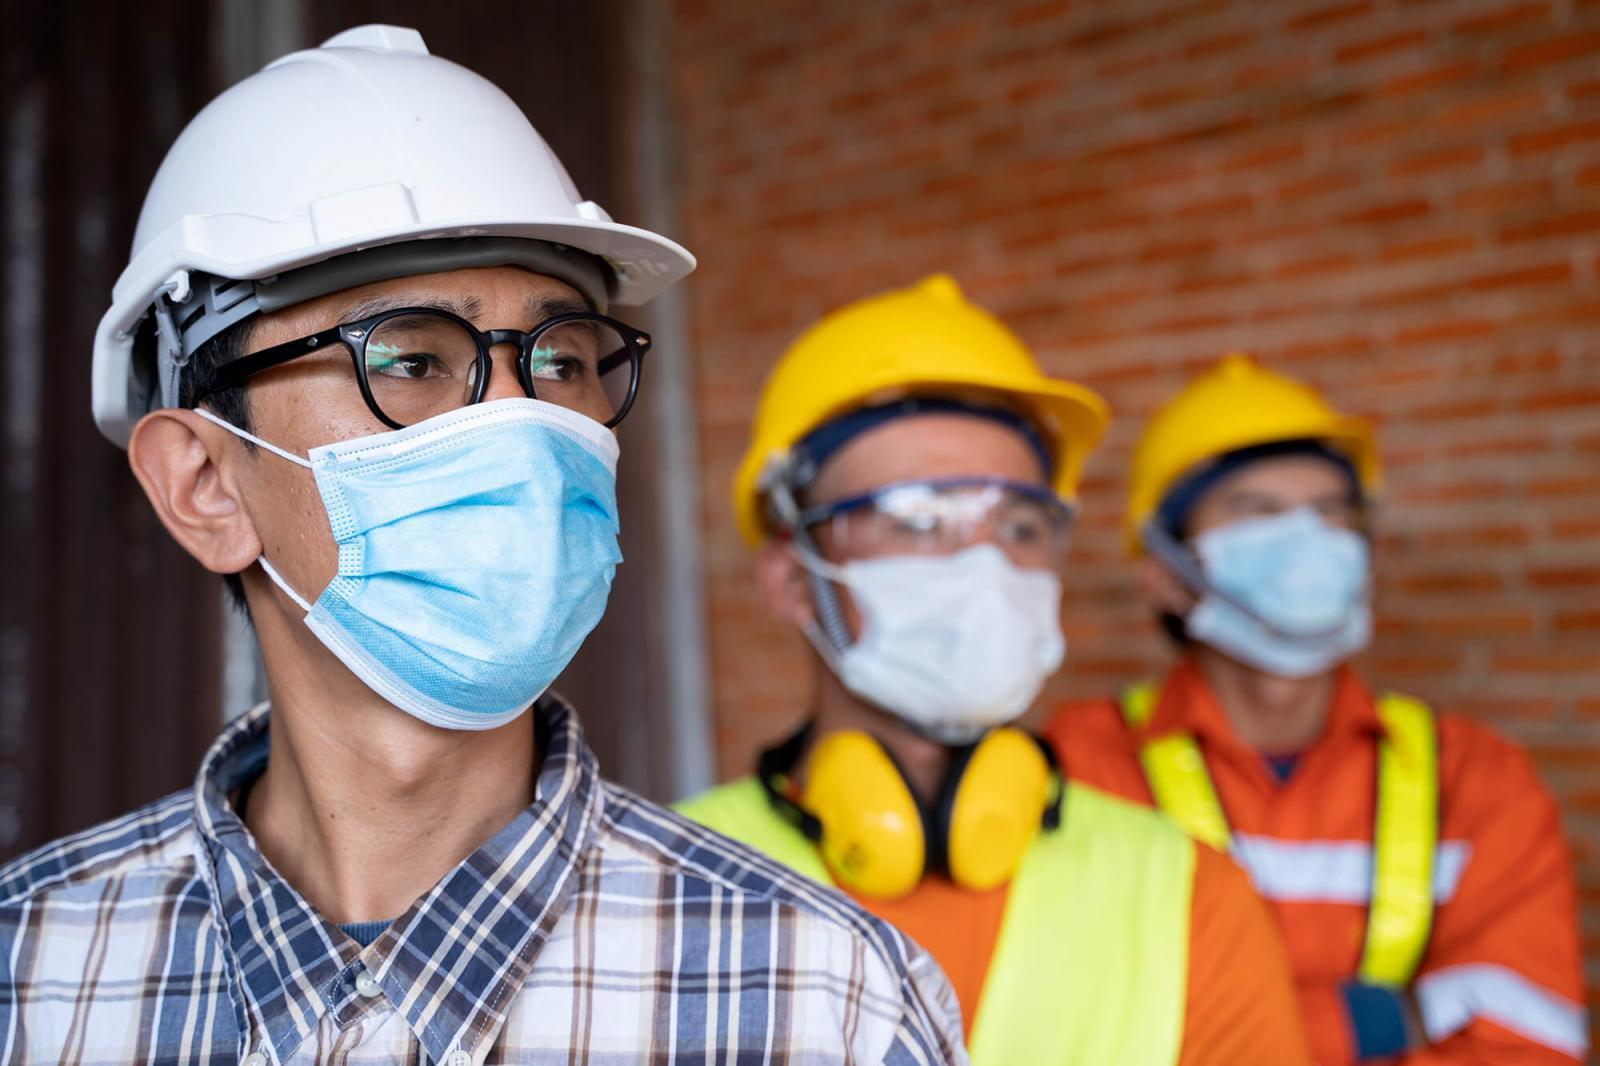 Building a stronger safety culture